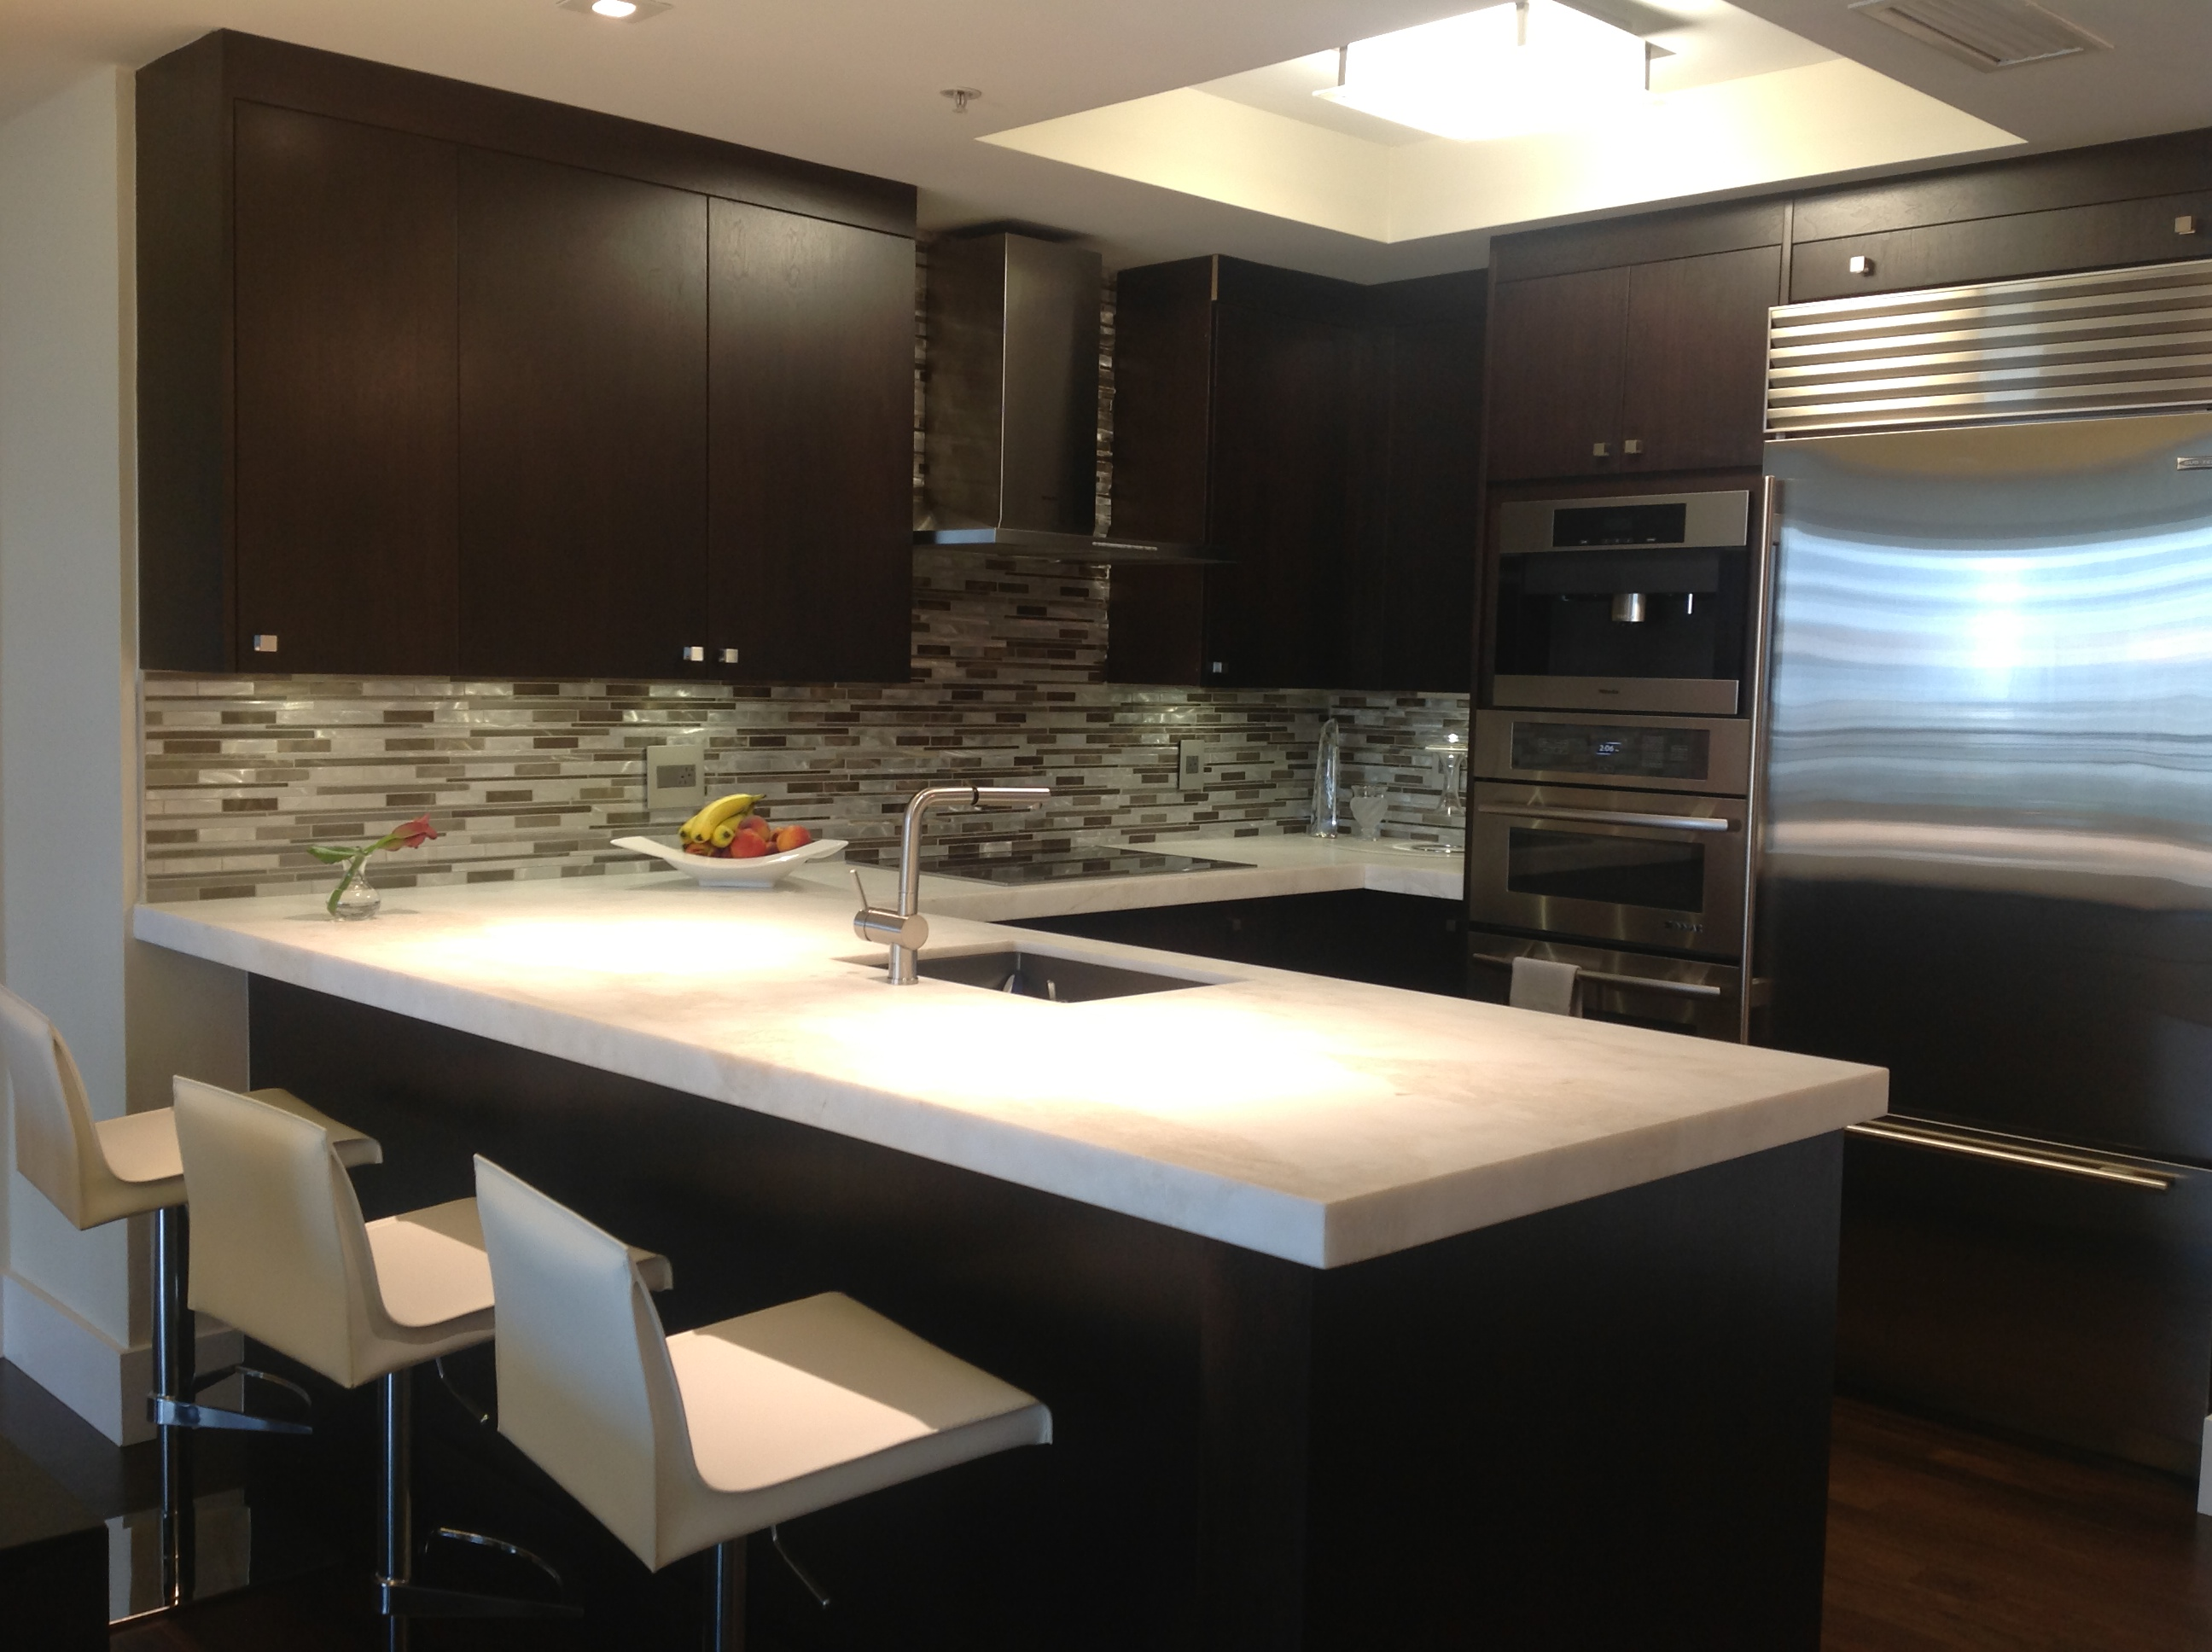 Uncategorized Kitchen Cabinets Miami jandj custom kitchen cabinets company luxurious if you can dream it we build it